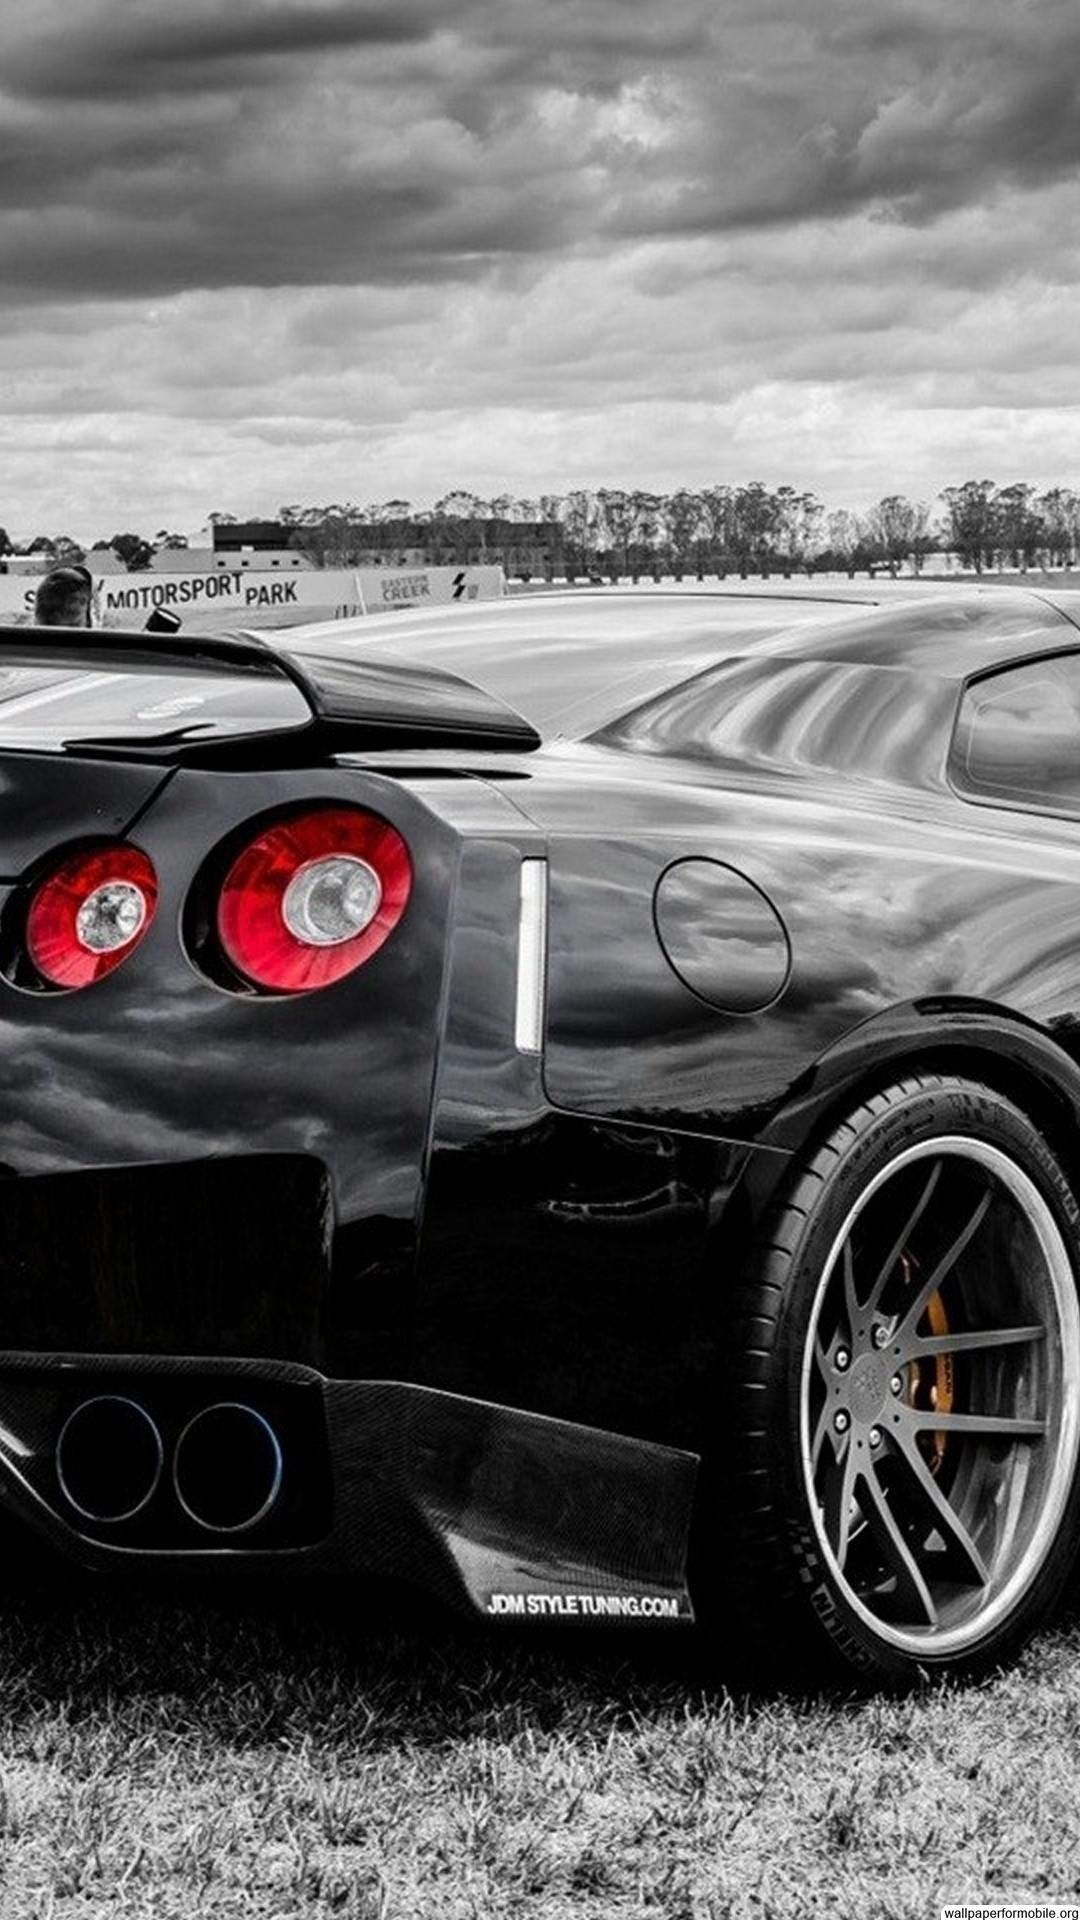 72 Jdm Iphone Wallpapers On Wallpaperplay Nissan Gtr Wallpapers Nissan Nissan Skyline